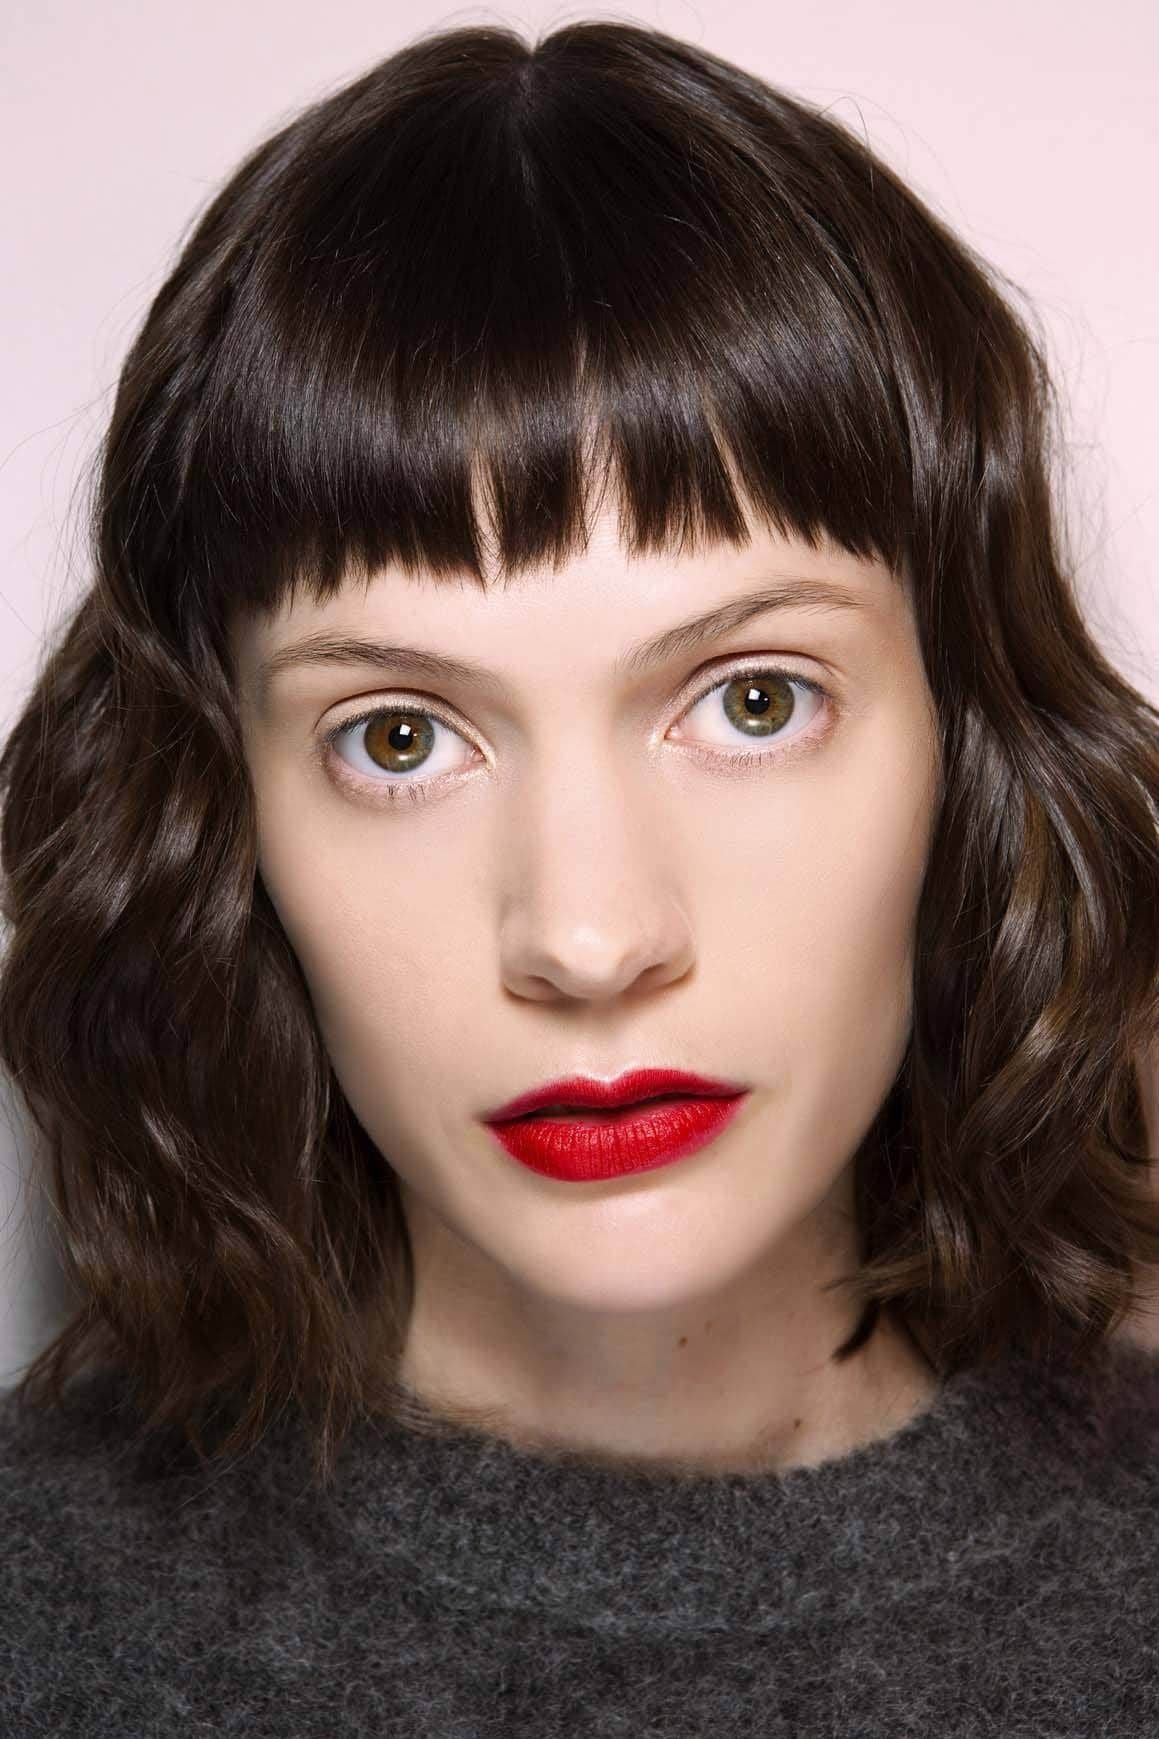 The Best Short Bangs 2019 How To Get In On The Trend All Things Hair Pictures